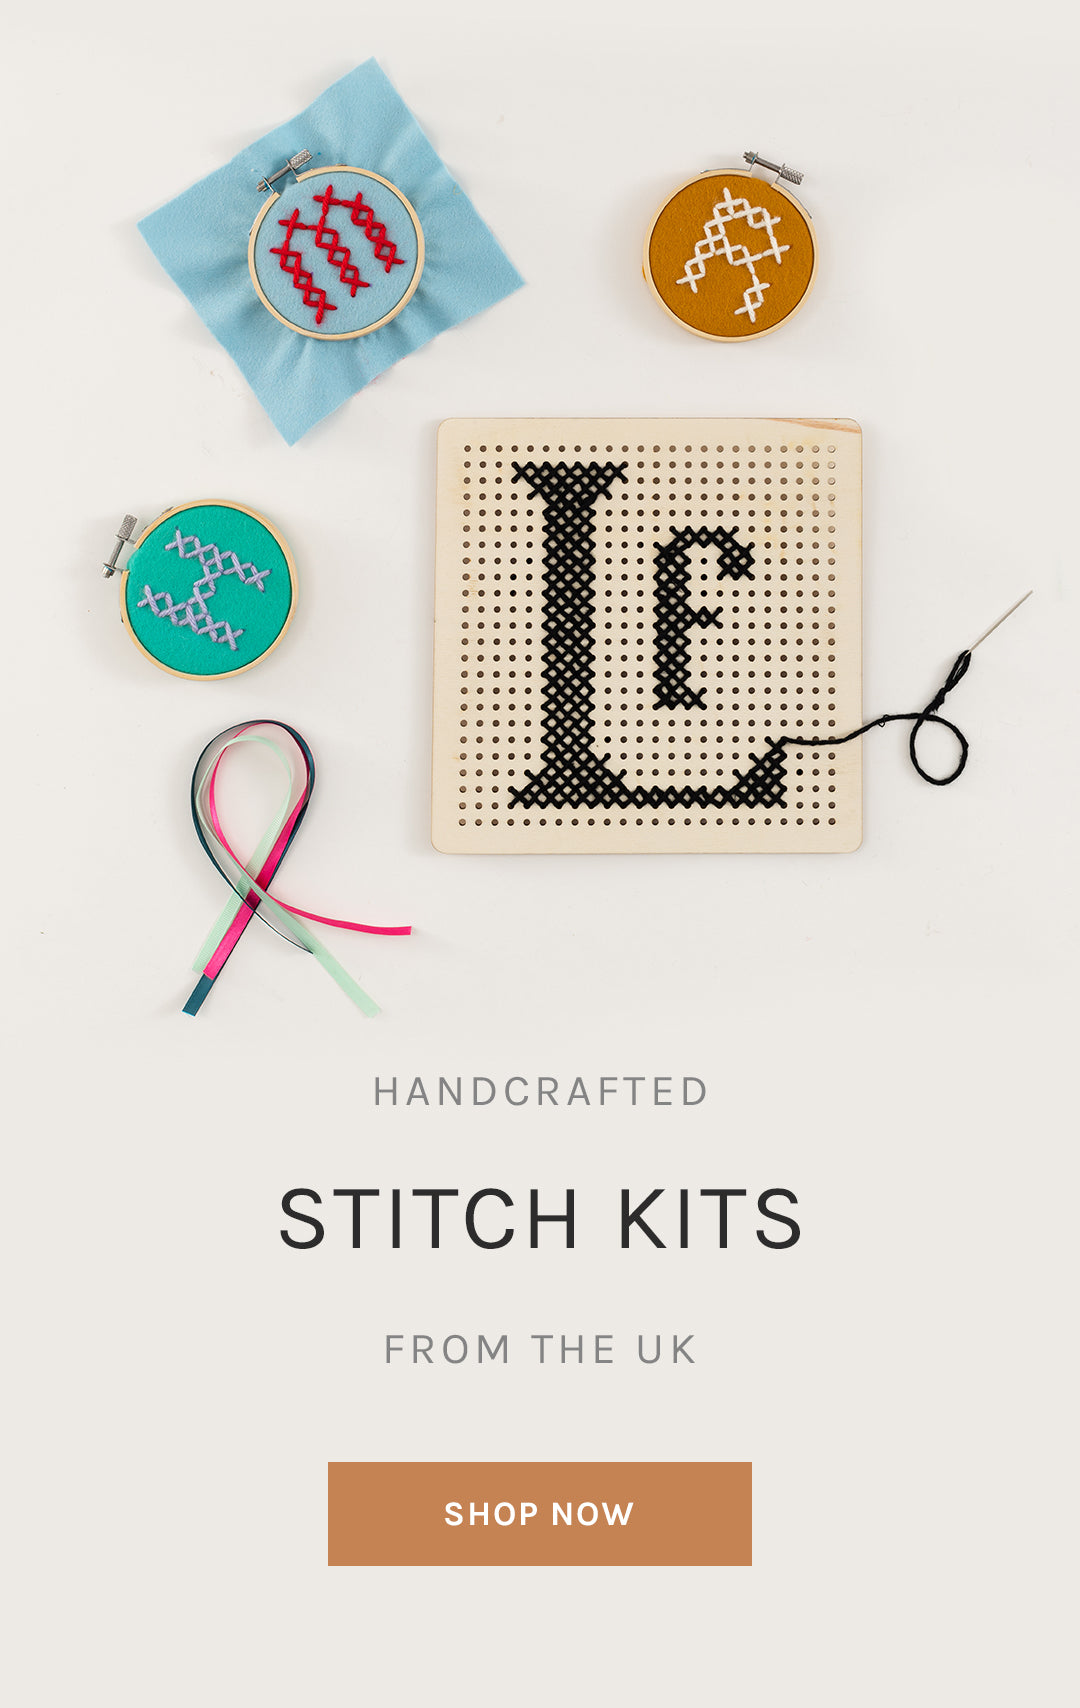 Handcrafted Stitch Kits from the U.K.